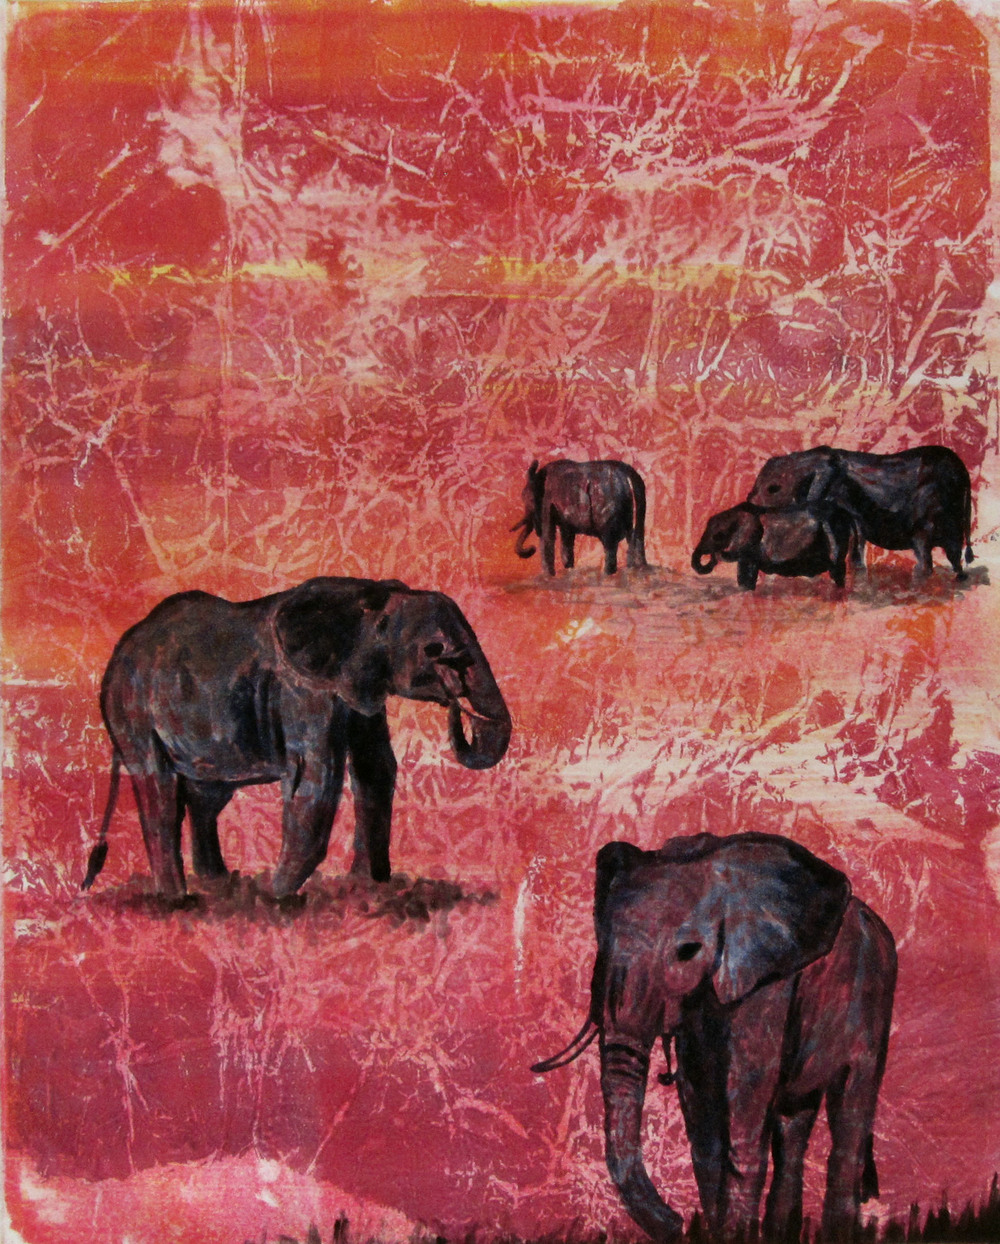 "Elephants at Sunset - 2012, ink on paper, 12x18"" image, monotype"